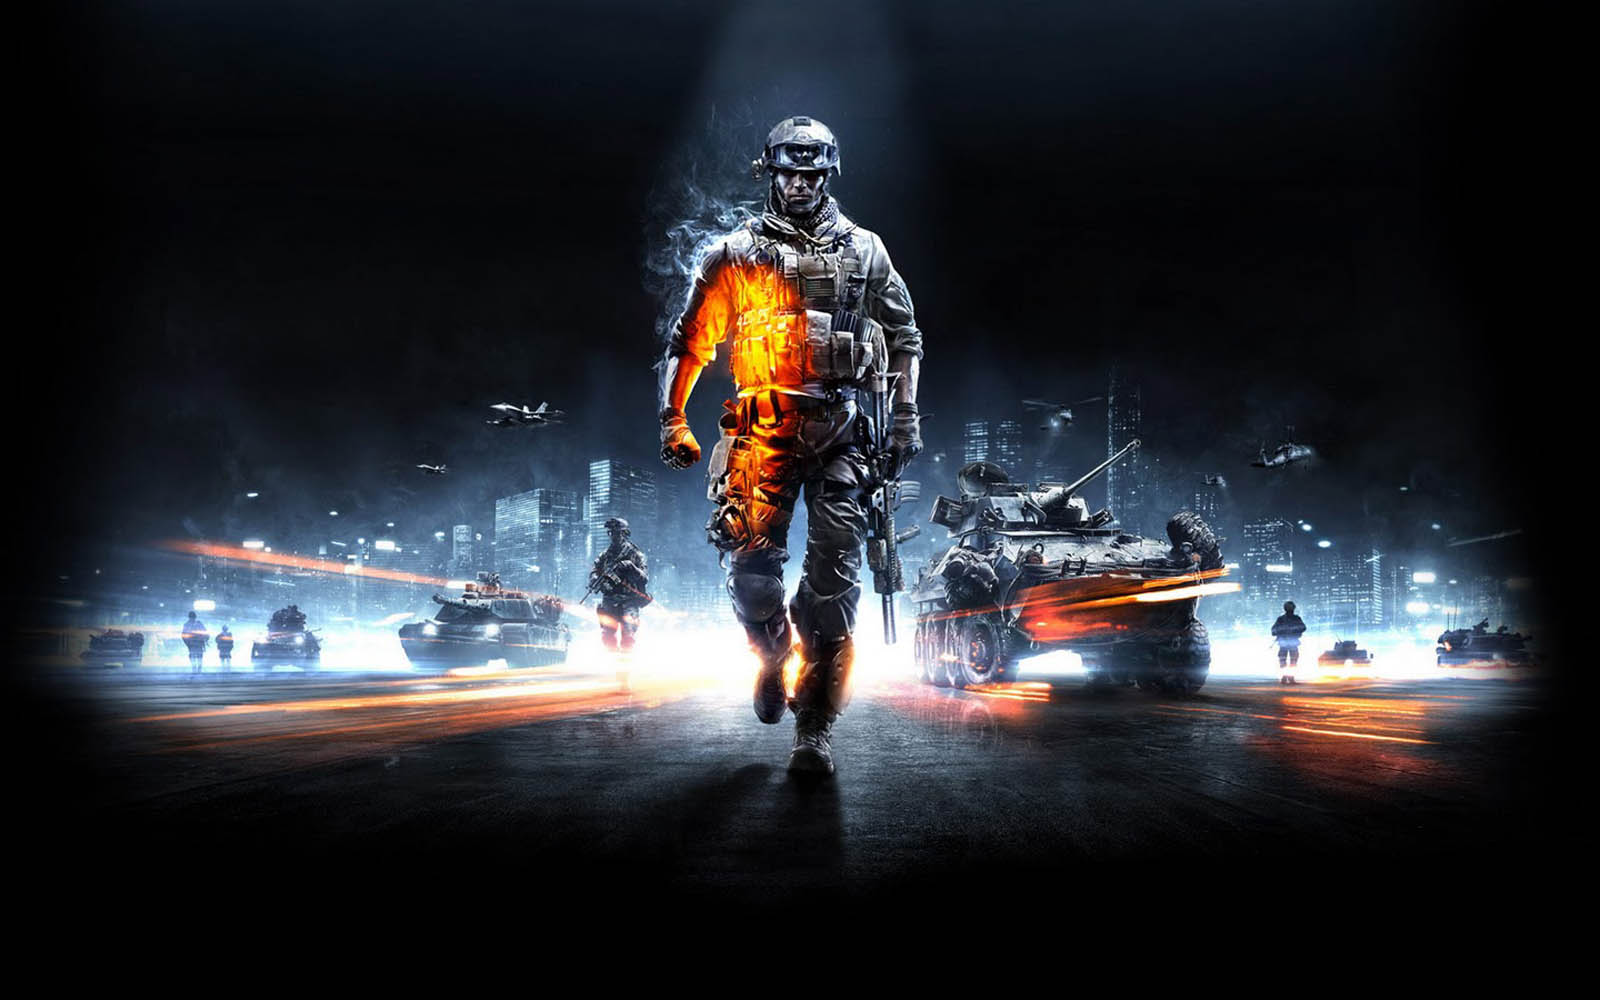 10 New Gaming Wallpaper Hd 1920x1080 Full Hd 1080p For Pc: Wallpapers: Battlefield 3 Game Desktop Wallpapers